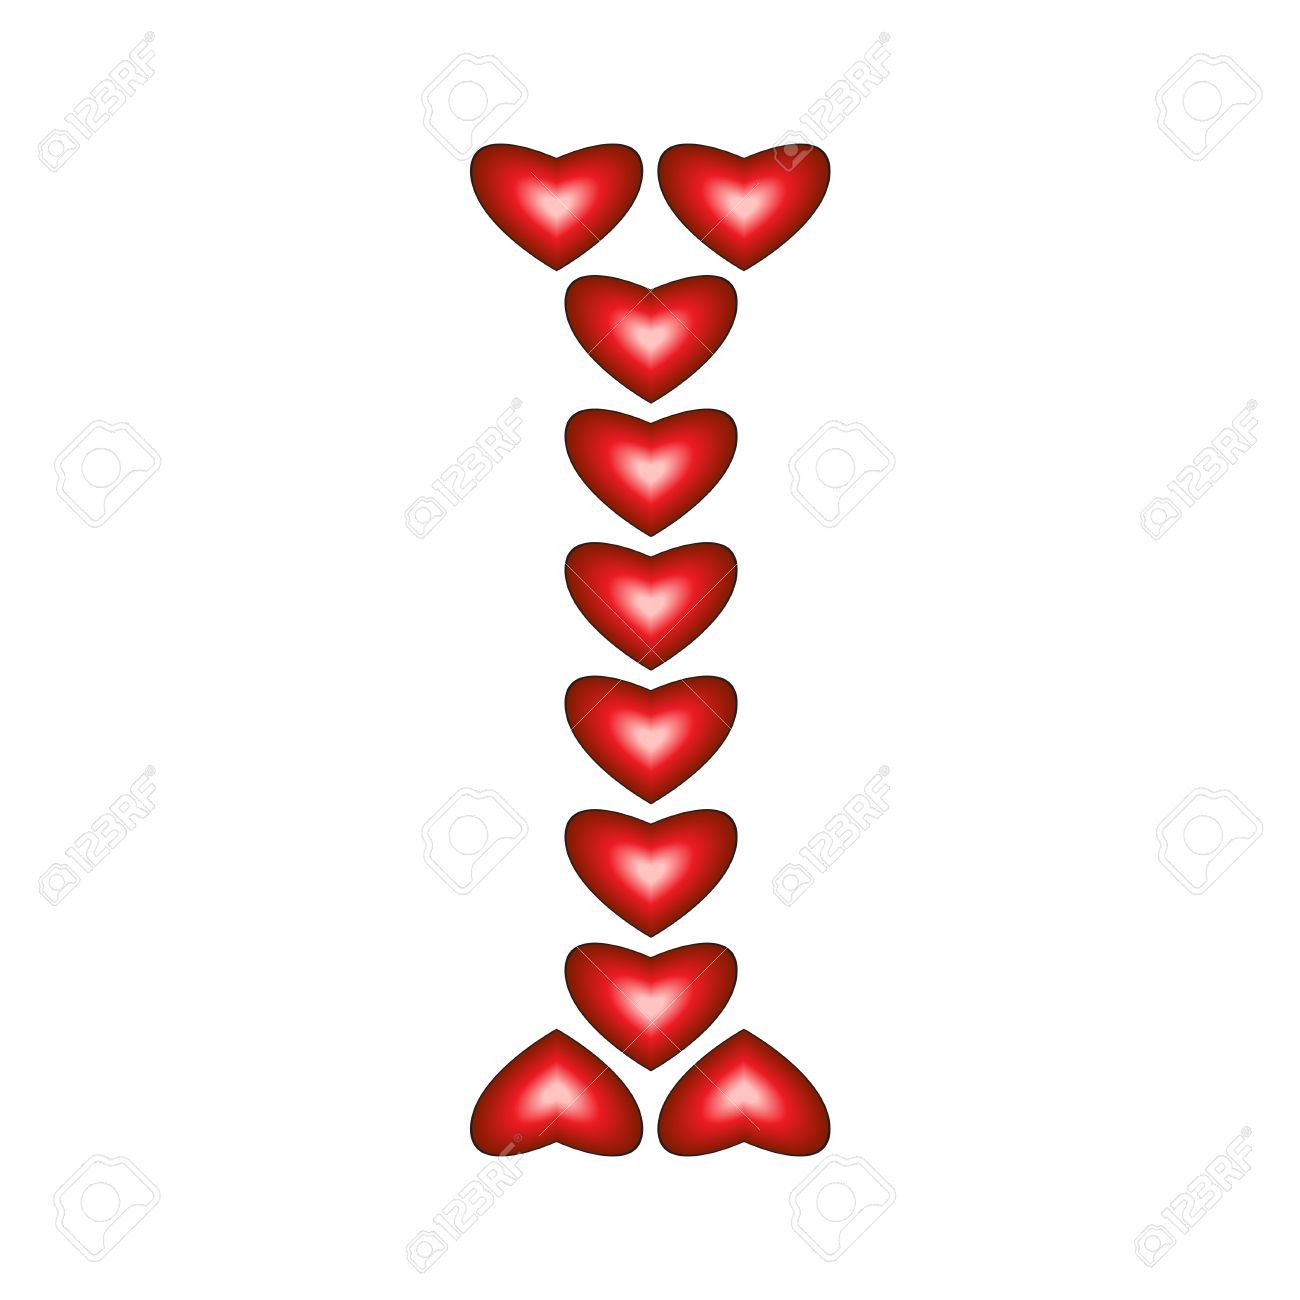 letter i made of hearts on white background royalty free cliparts